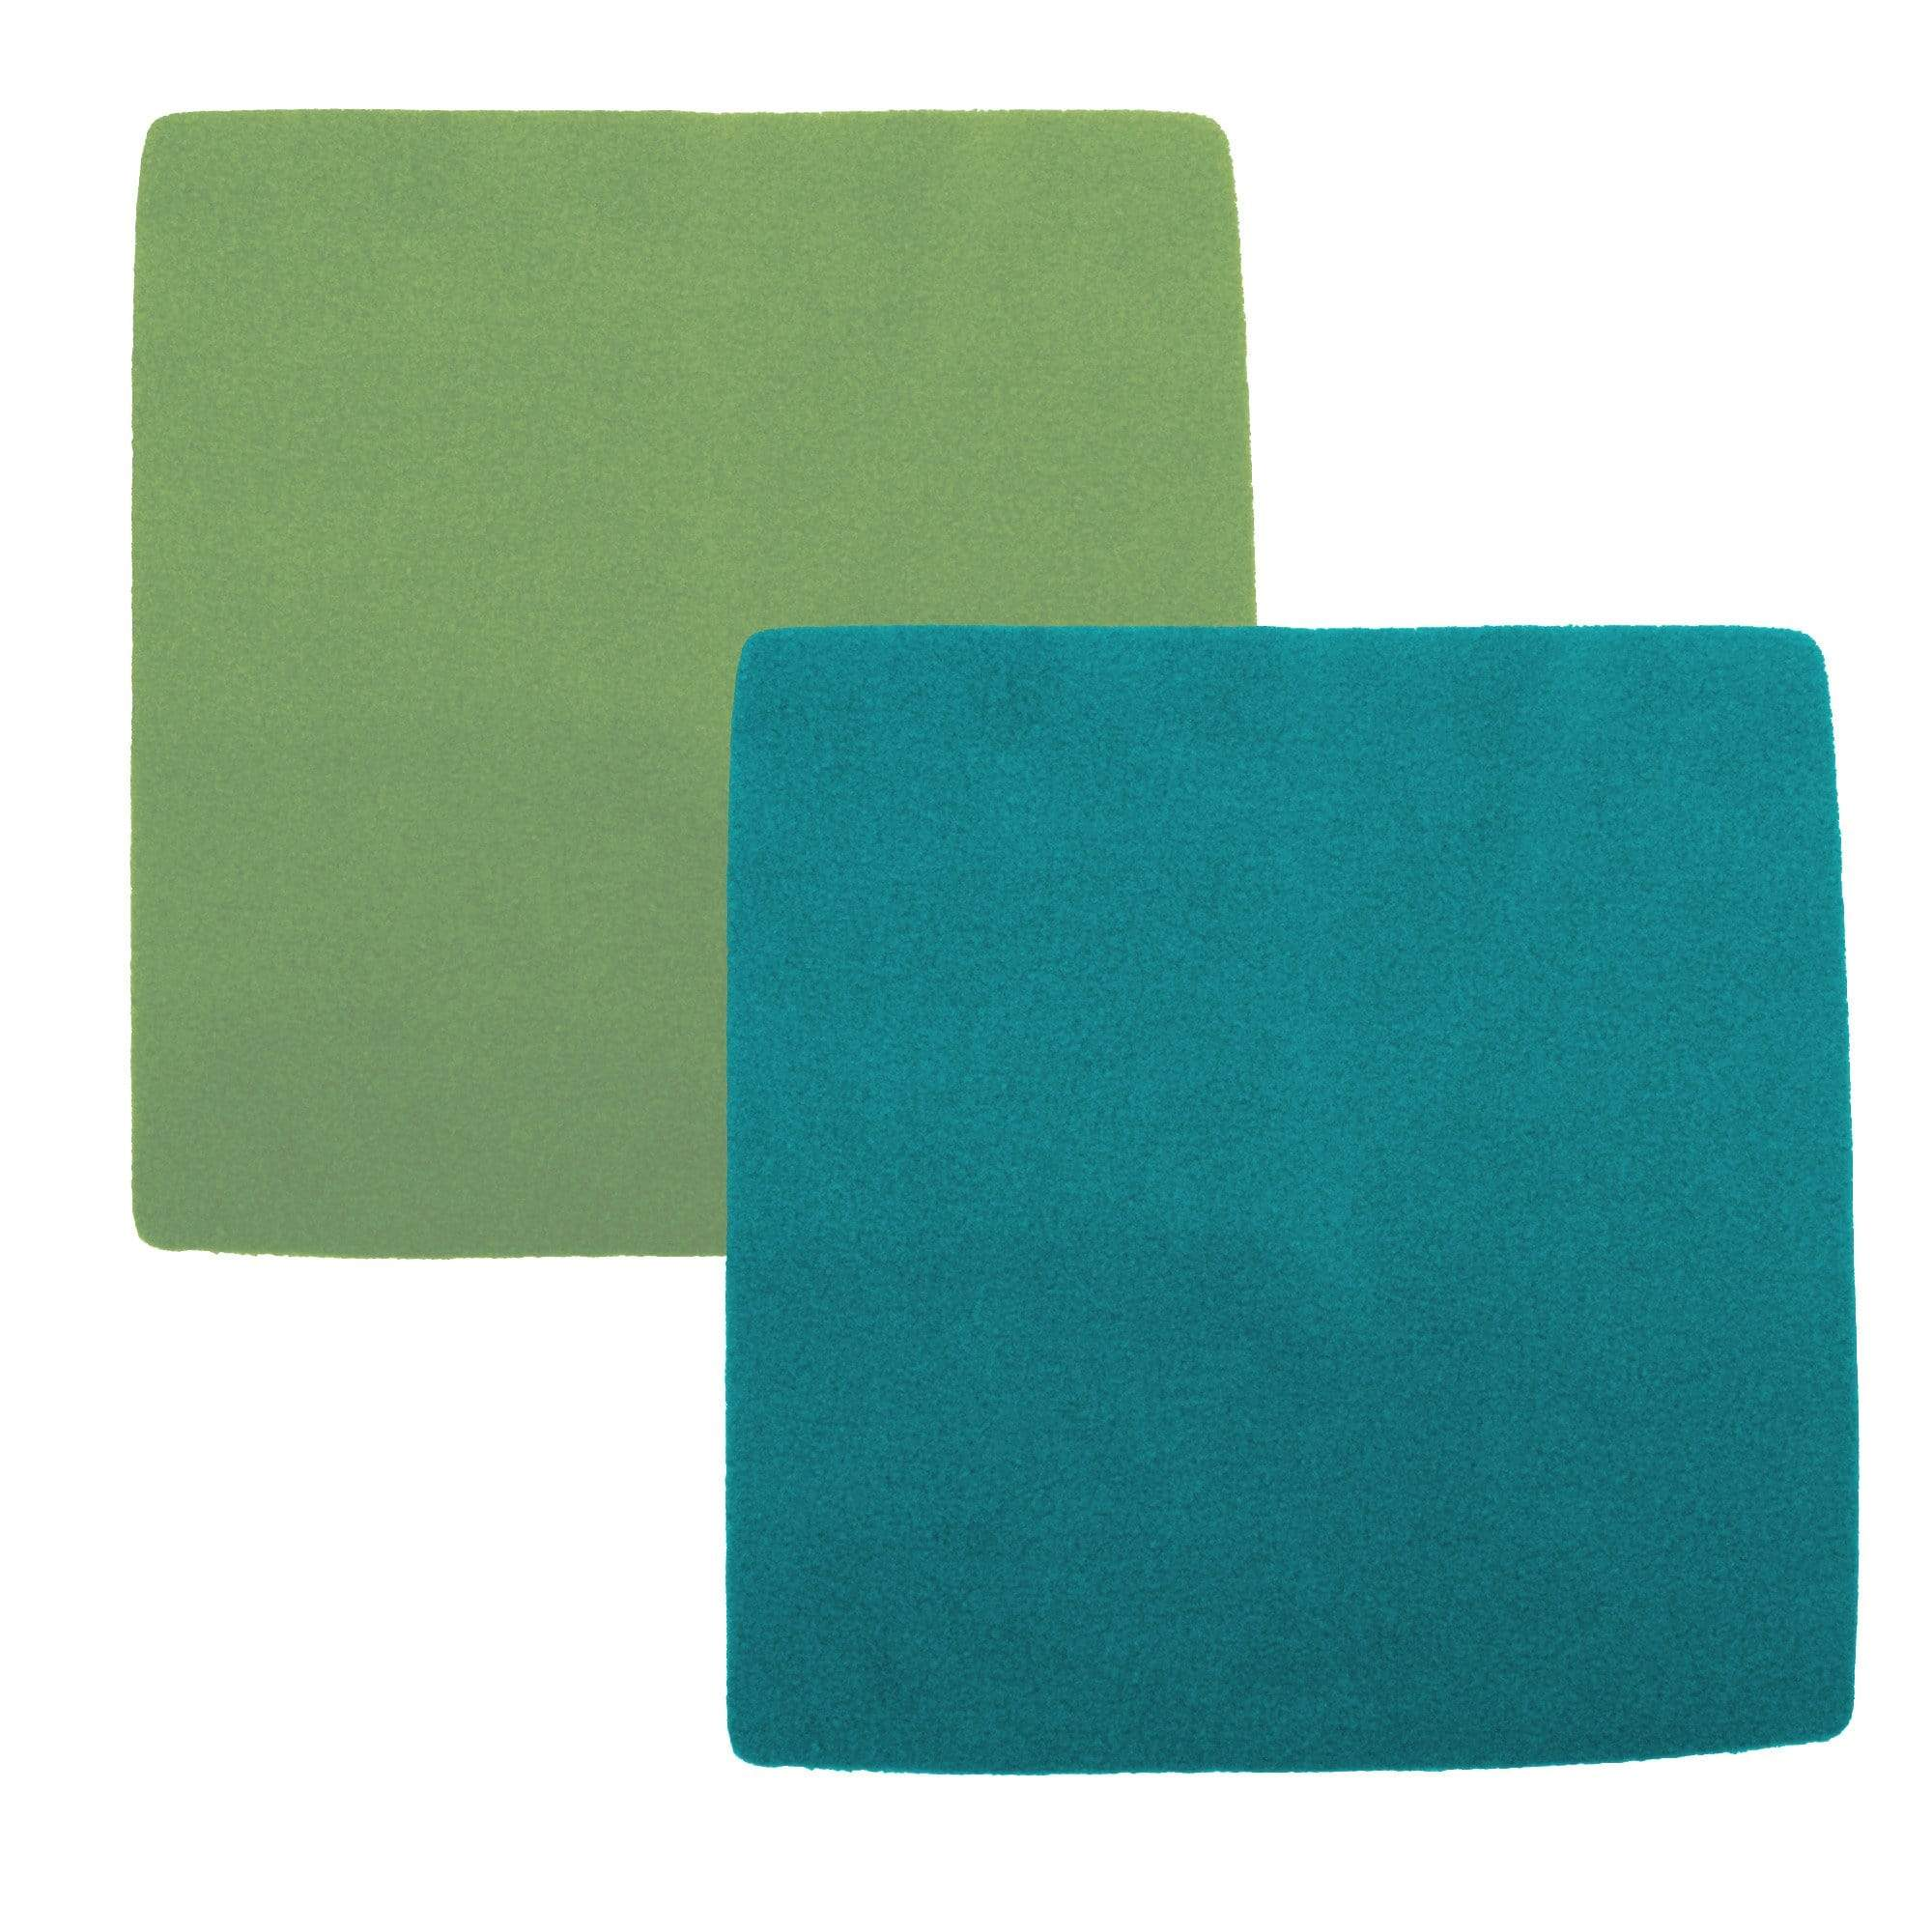 Nicki's Diapers Fleece Wipes - Green/Teal